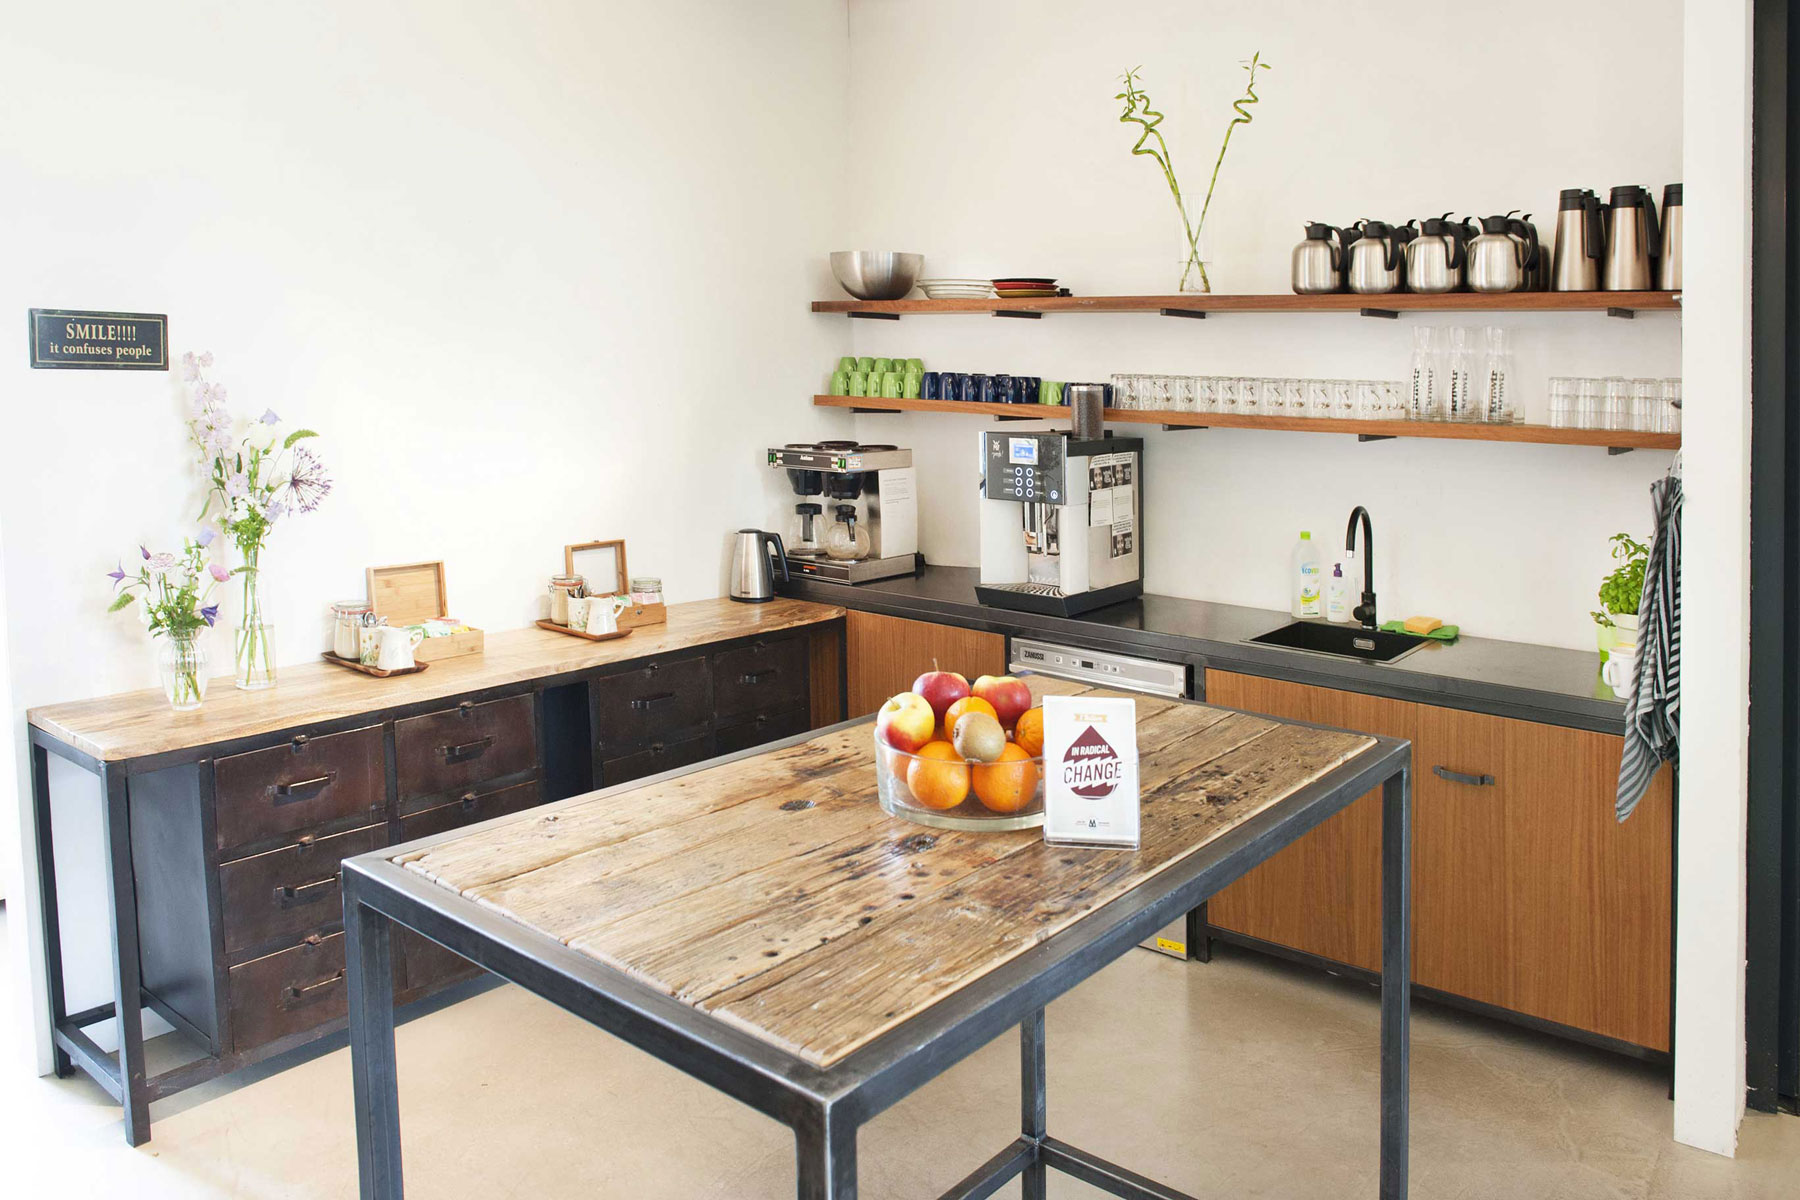 eat sustainable food meal shared kitchen impact hub westerpark amsterdam